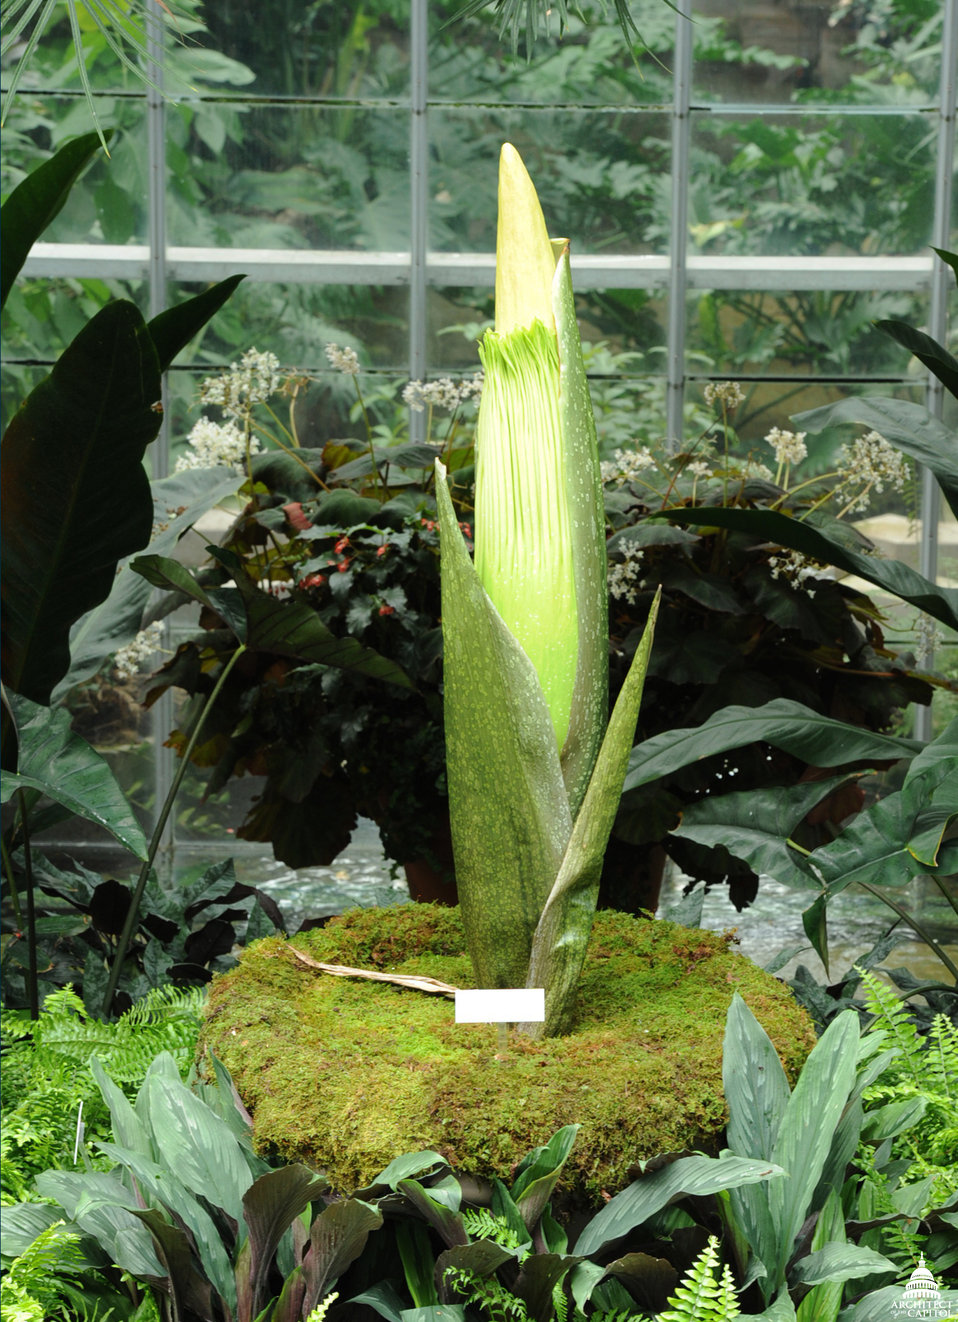 Titan Arum (Amorphophallus titanum) at the U.S. Botanic Garden